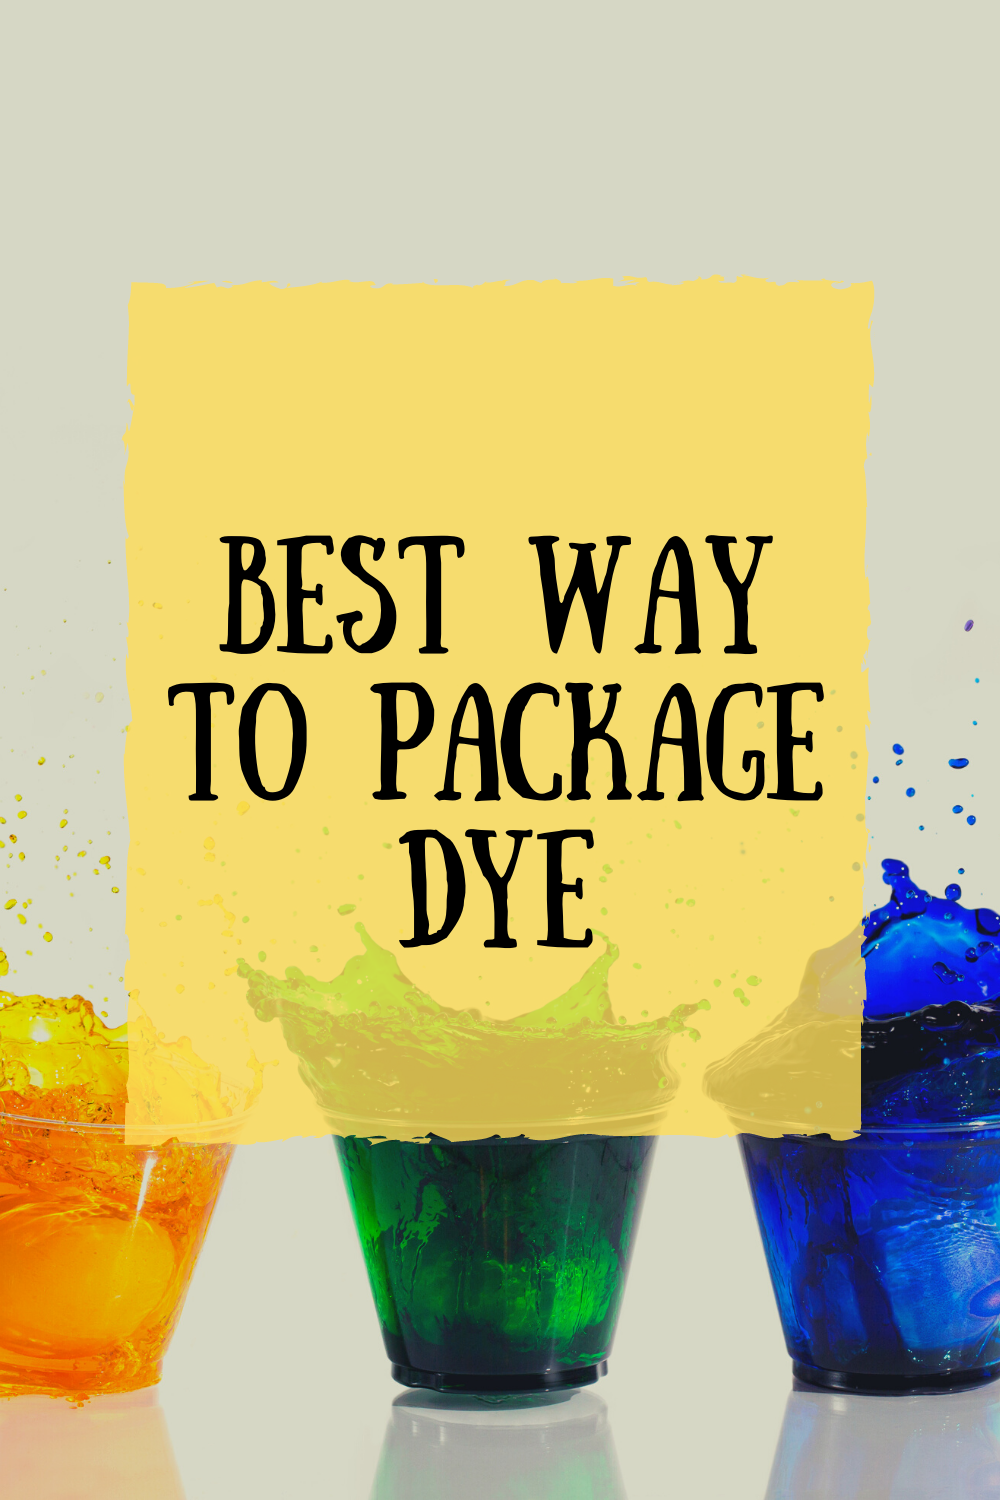 Recommendations for Packaging Dye